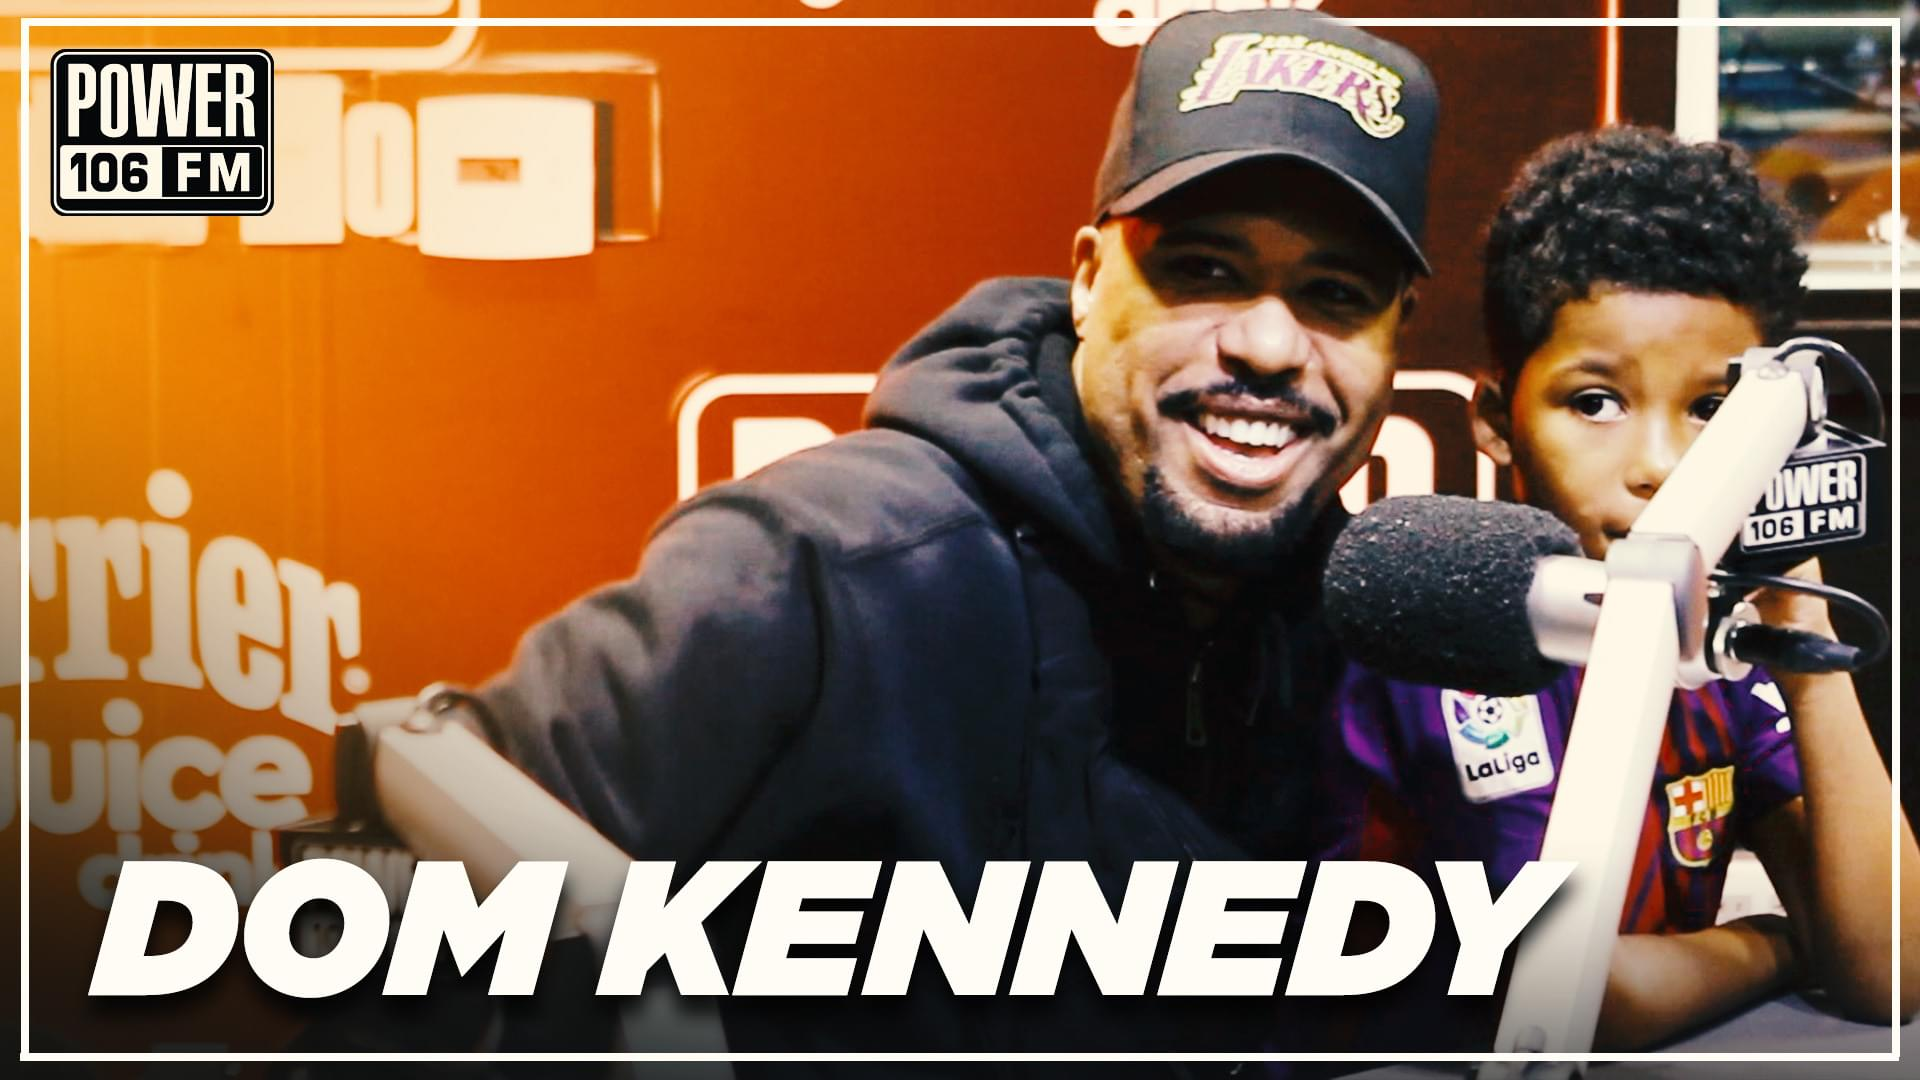 Dom Kennedy On Rejecting Record Deals, 'Volume 2' + New Music From O.P.M.